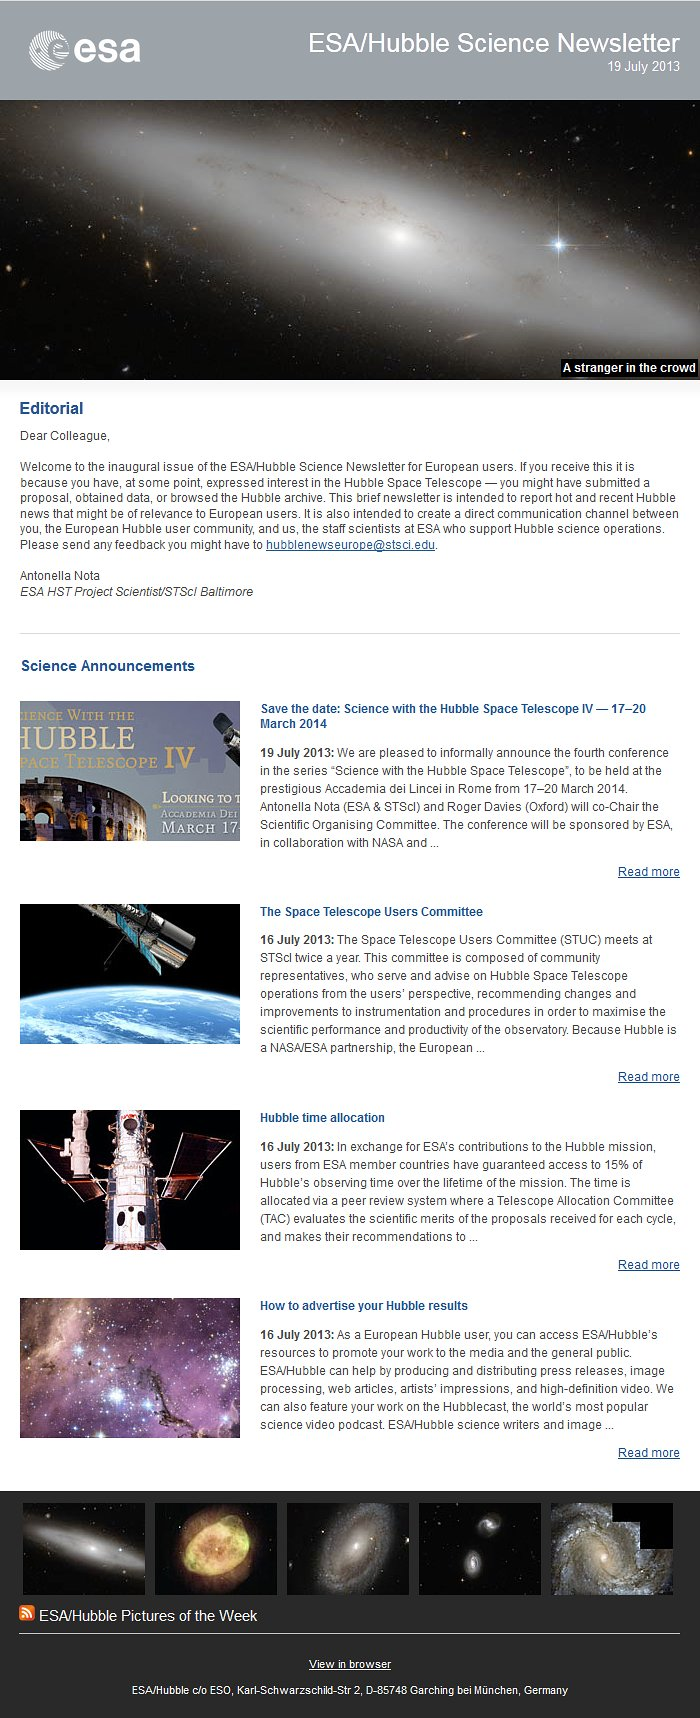 The July 2013 issue of the ESA/Hubble Science Newsletter